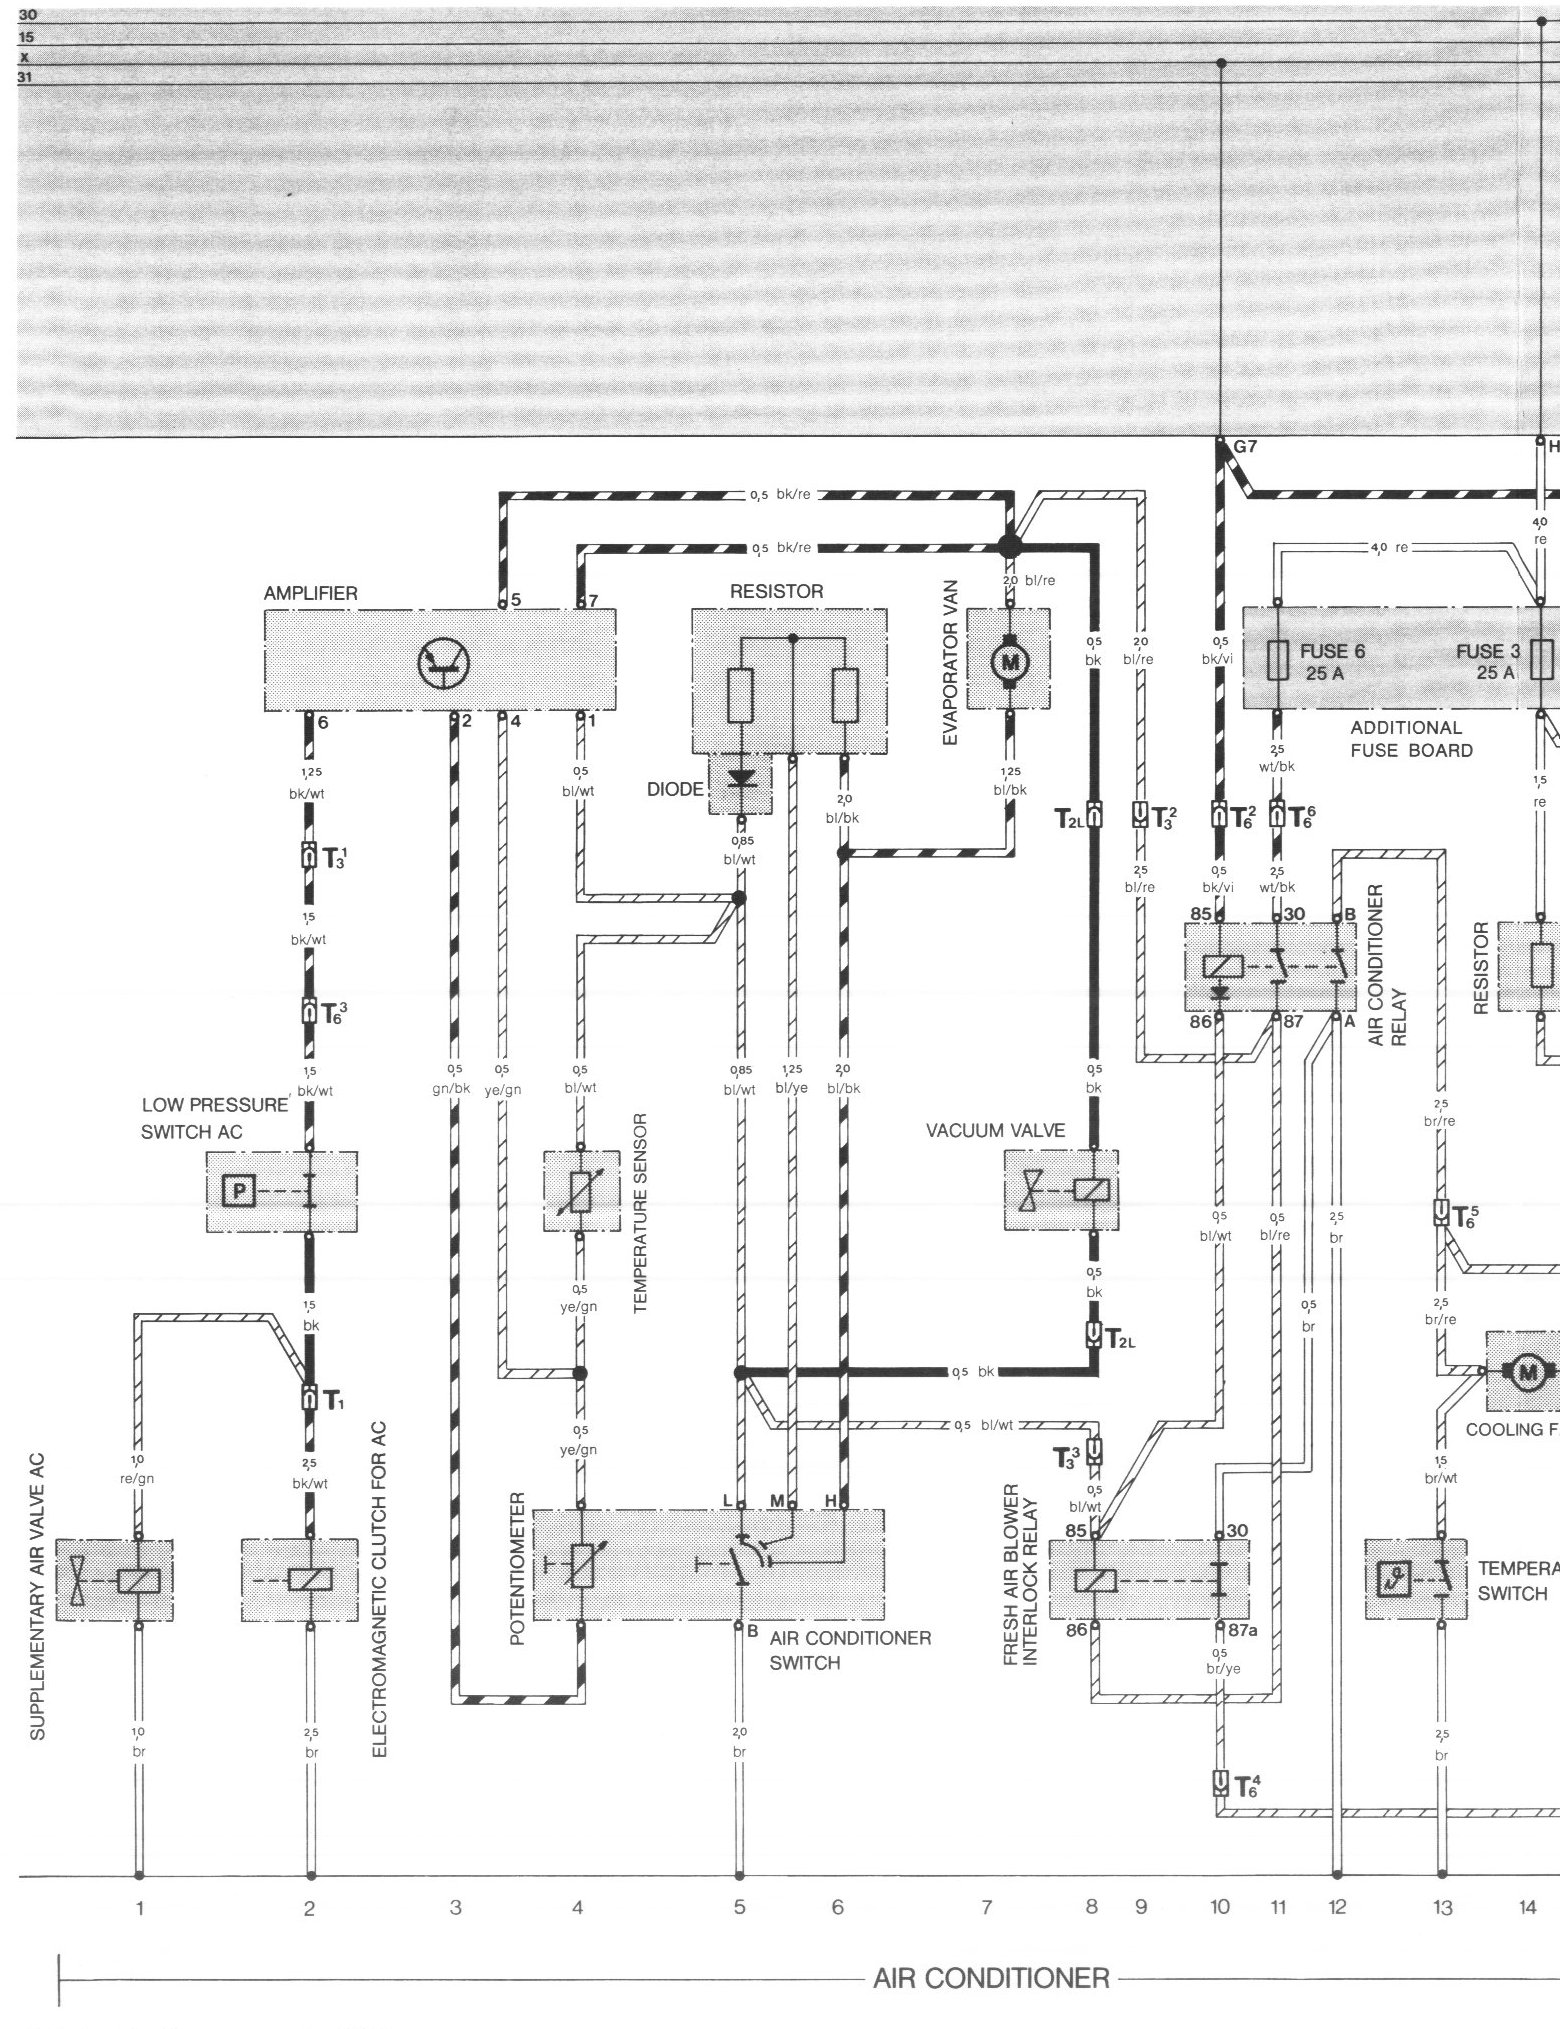 944_84_AC_1 pelican parts porsche 924 944 electrical diagrams 1987 porsche 944 wiring diagram at creativeand.co